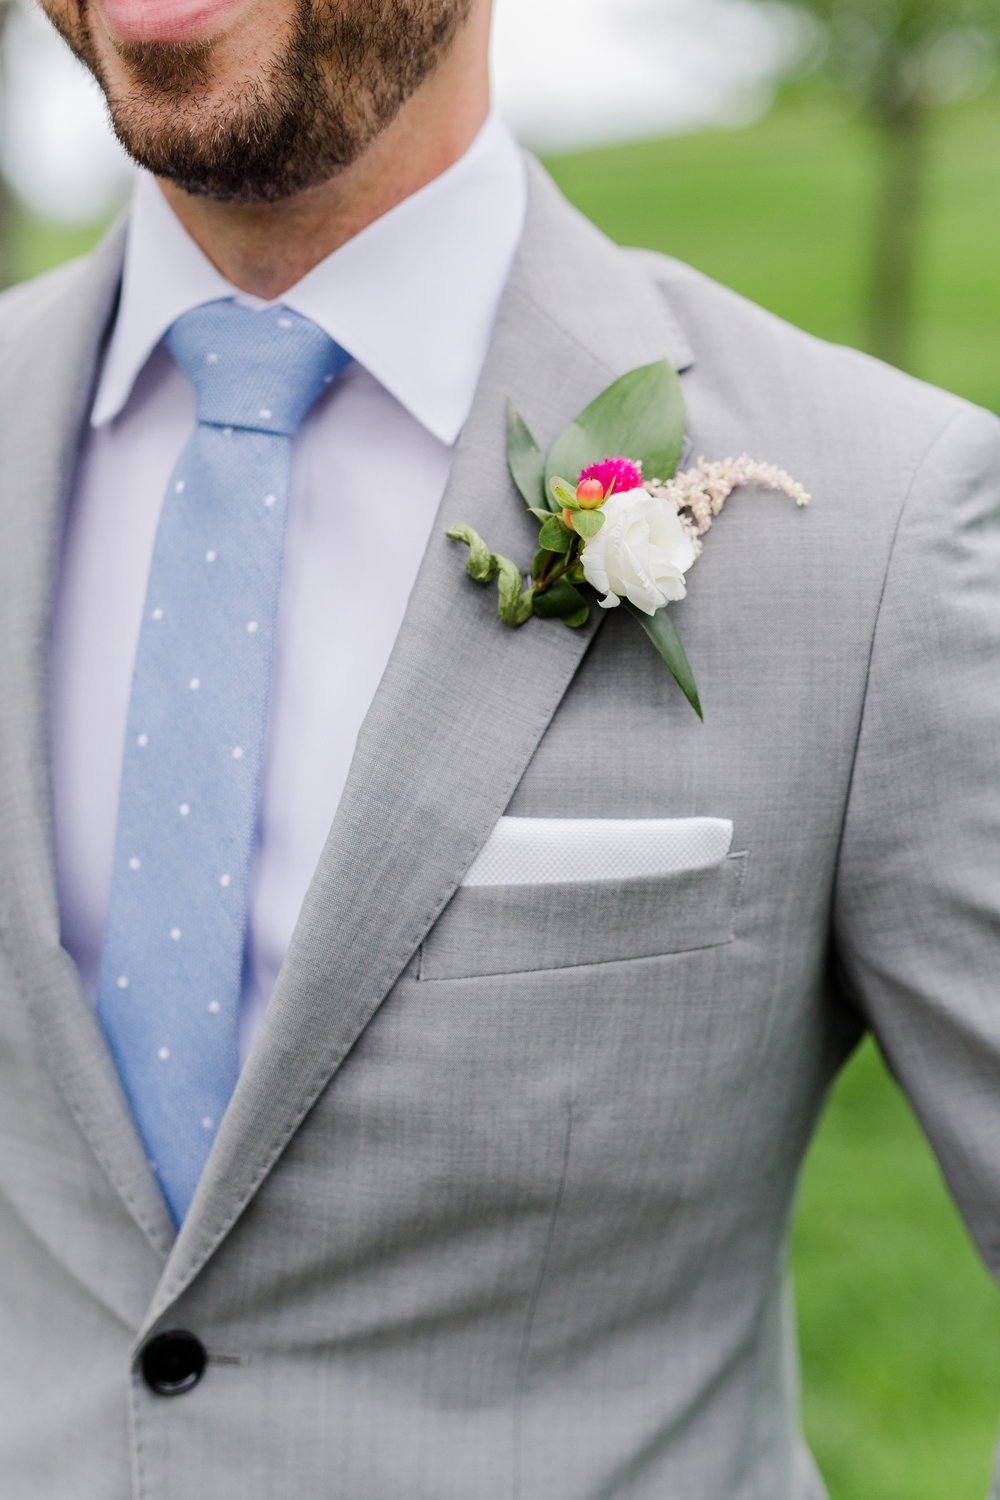 Jill + John :: Kristen Dyer :: Sixpence Events, boutonniere with pop of pink on grey suit with white pocket square and blue polka dot tie